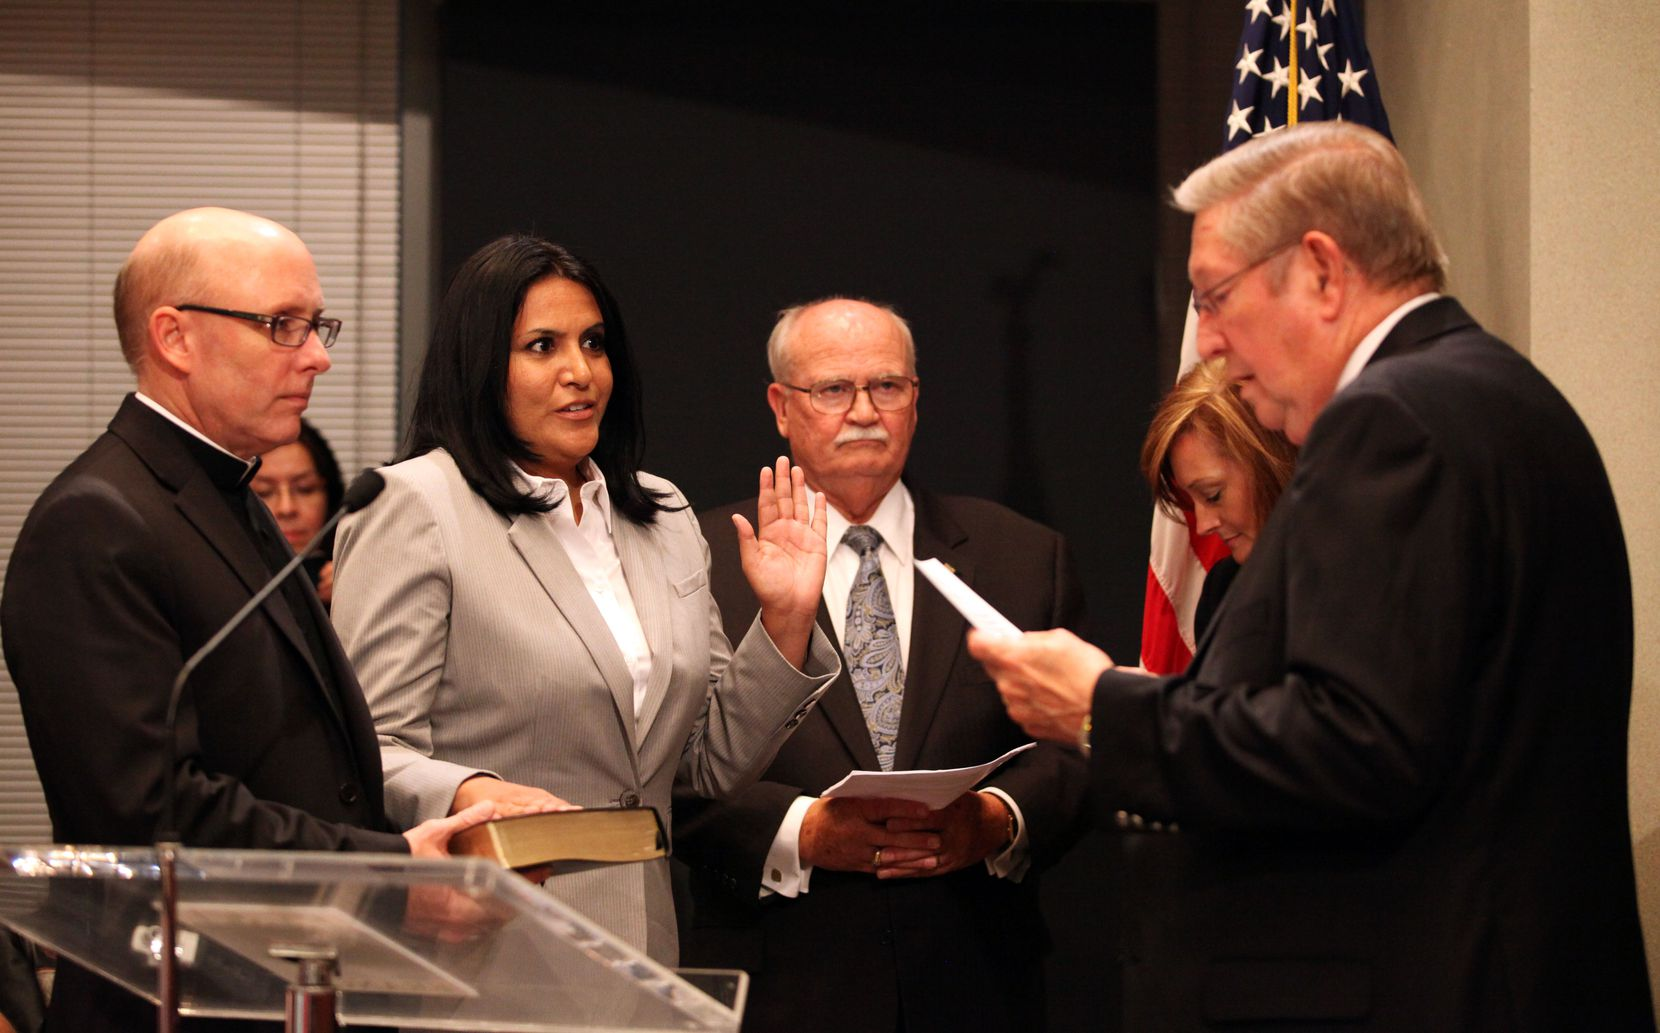 Ana Reyes was sworn in as Farmers Branch's first Hispanic council member in 2013.